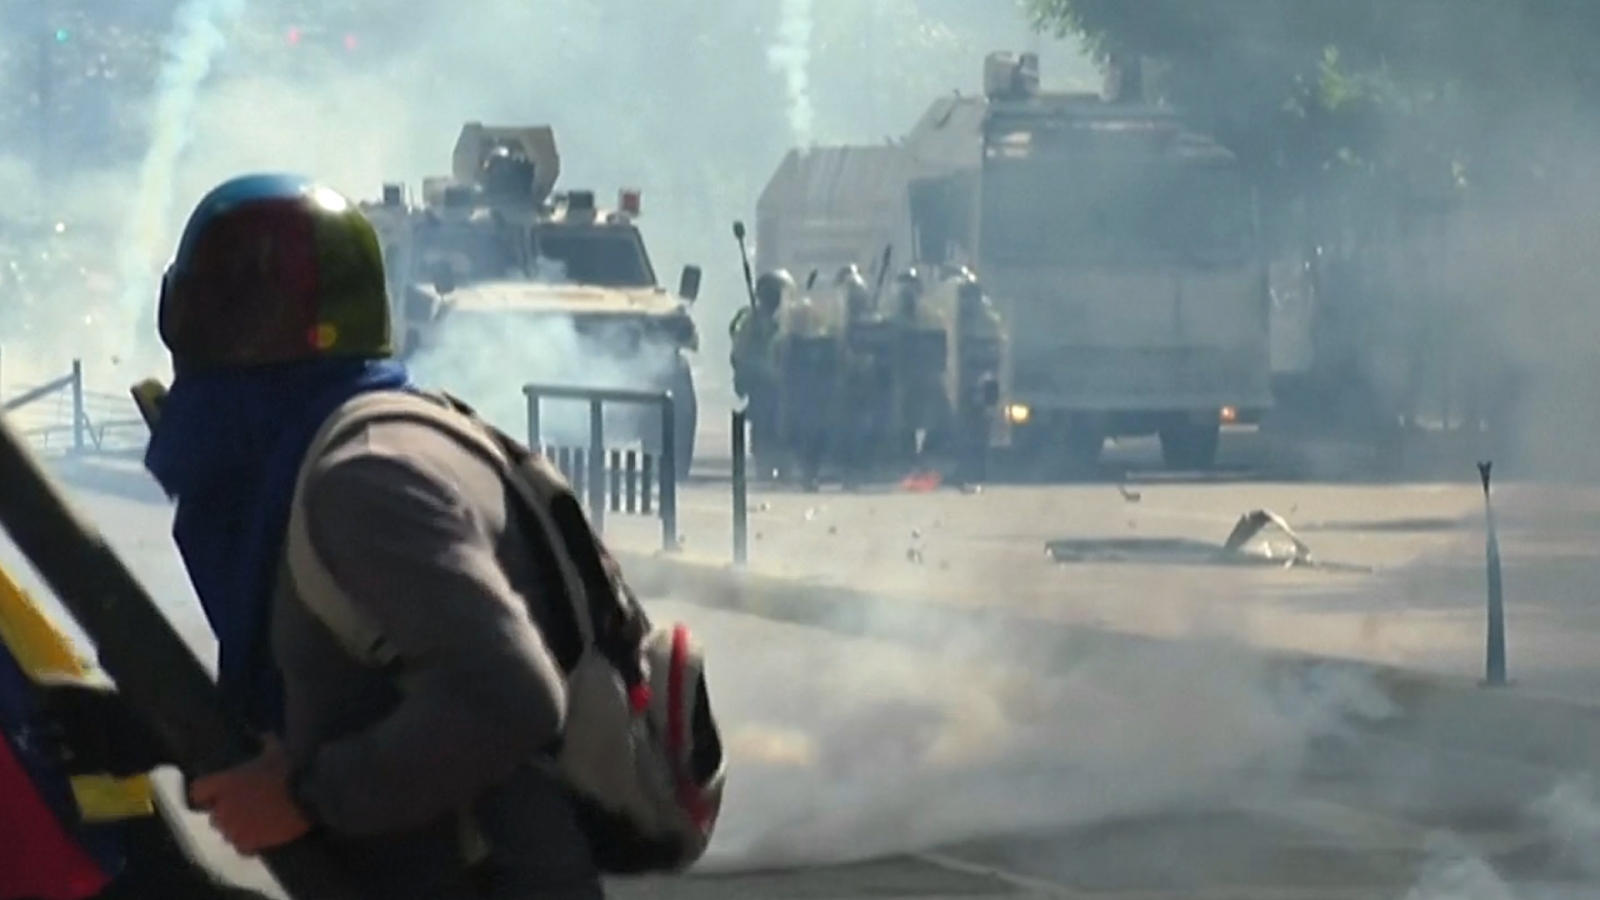 violent-clashes-in-venezuela-as-anti-government-protests-enter-50th-day